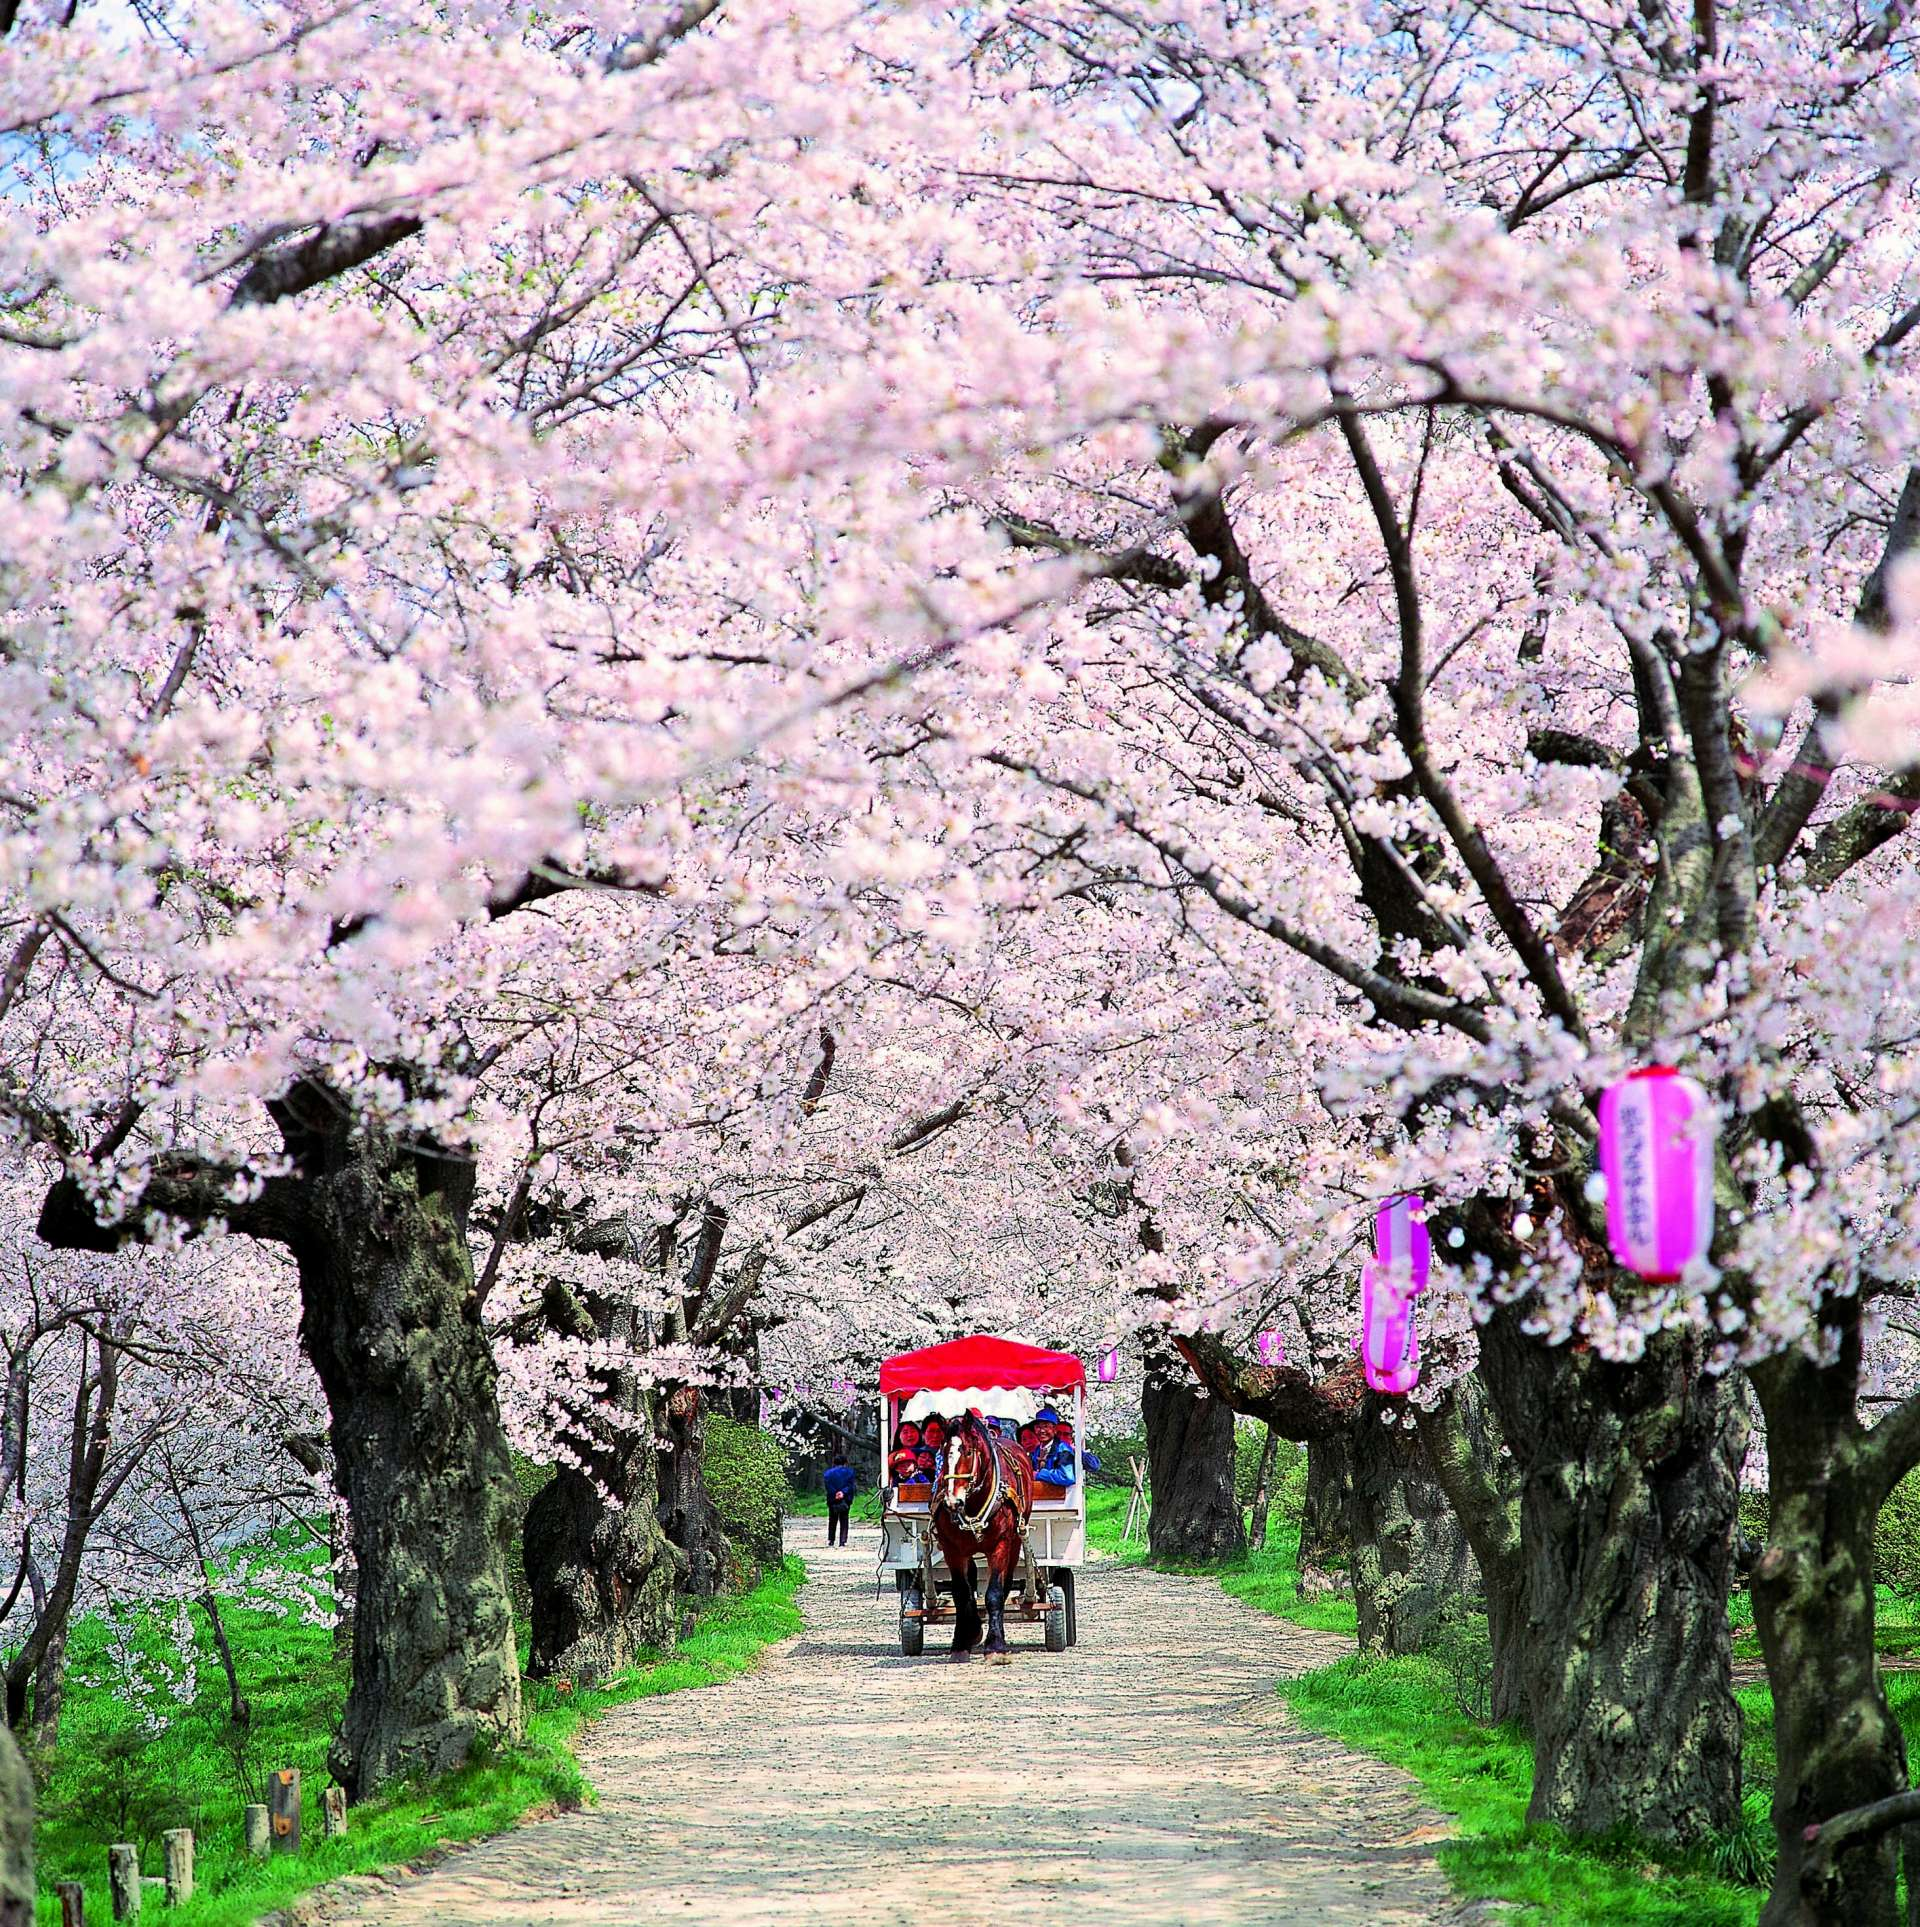 A horse-drawn cart traverses the tunnel of cherry blossoms and a charming punt crosses the Kitakami River